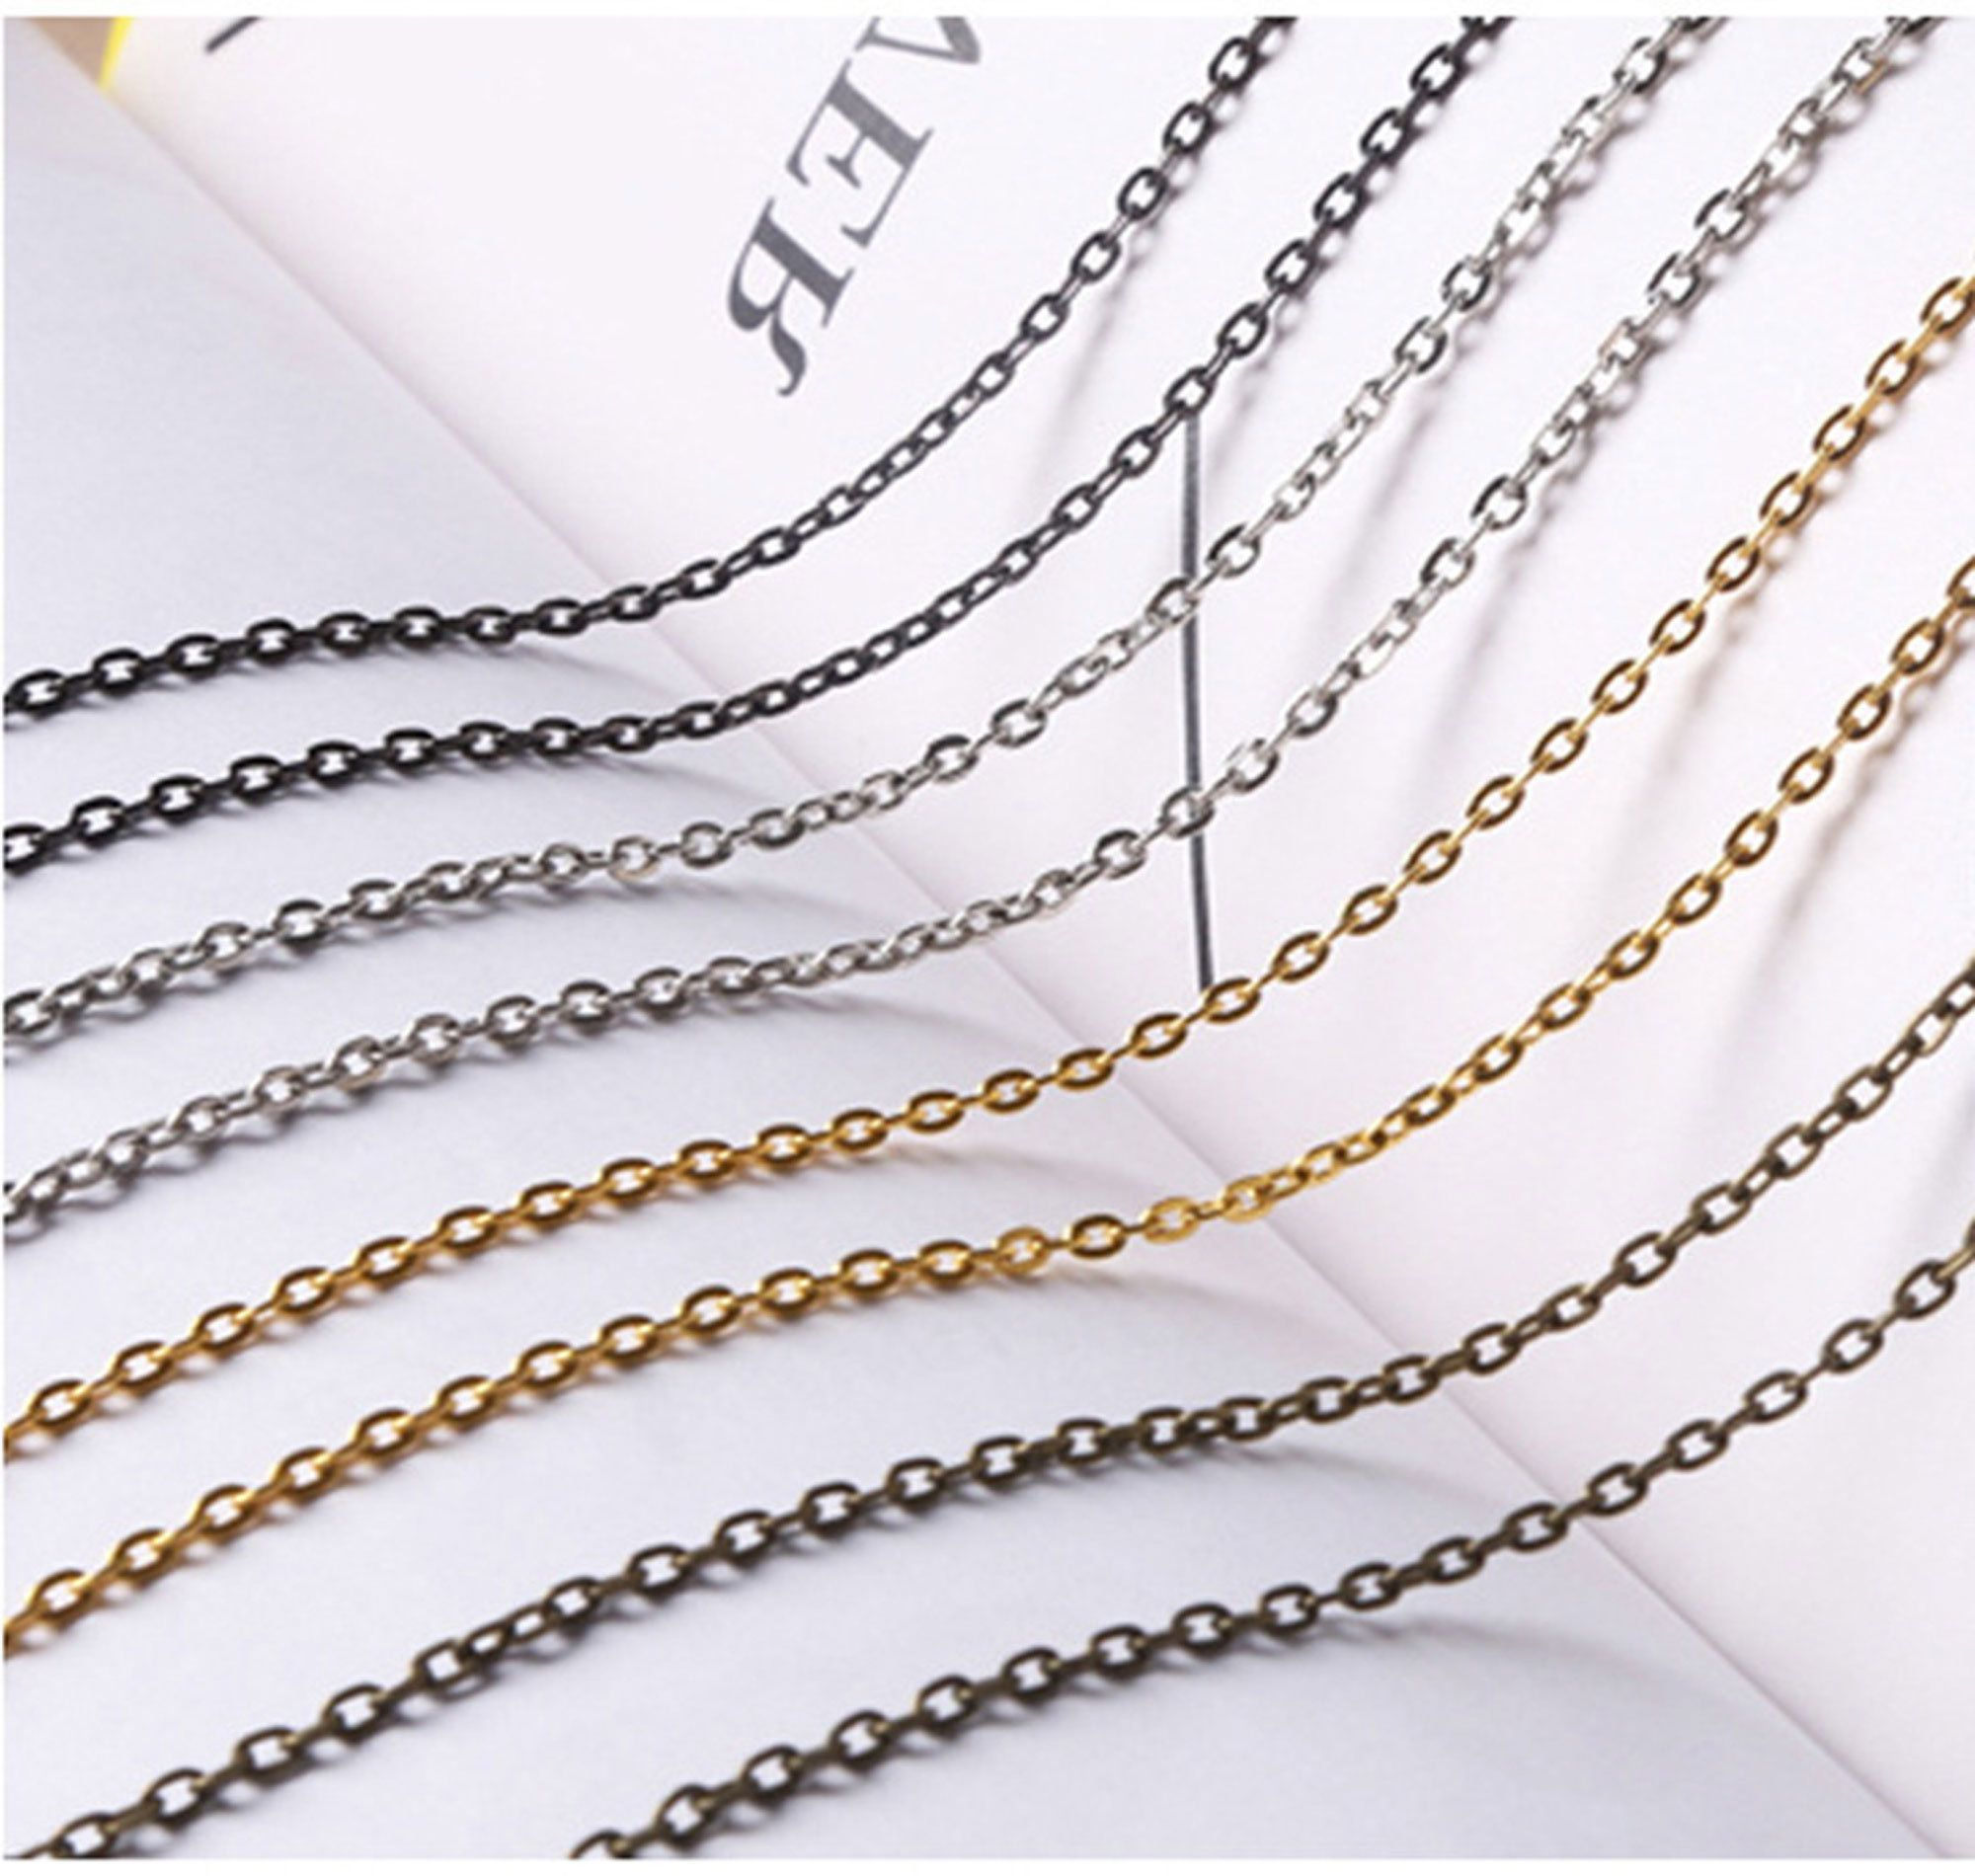 19++ Where to buy chains for jewelry making info